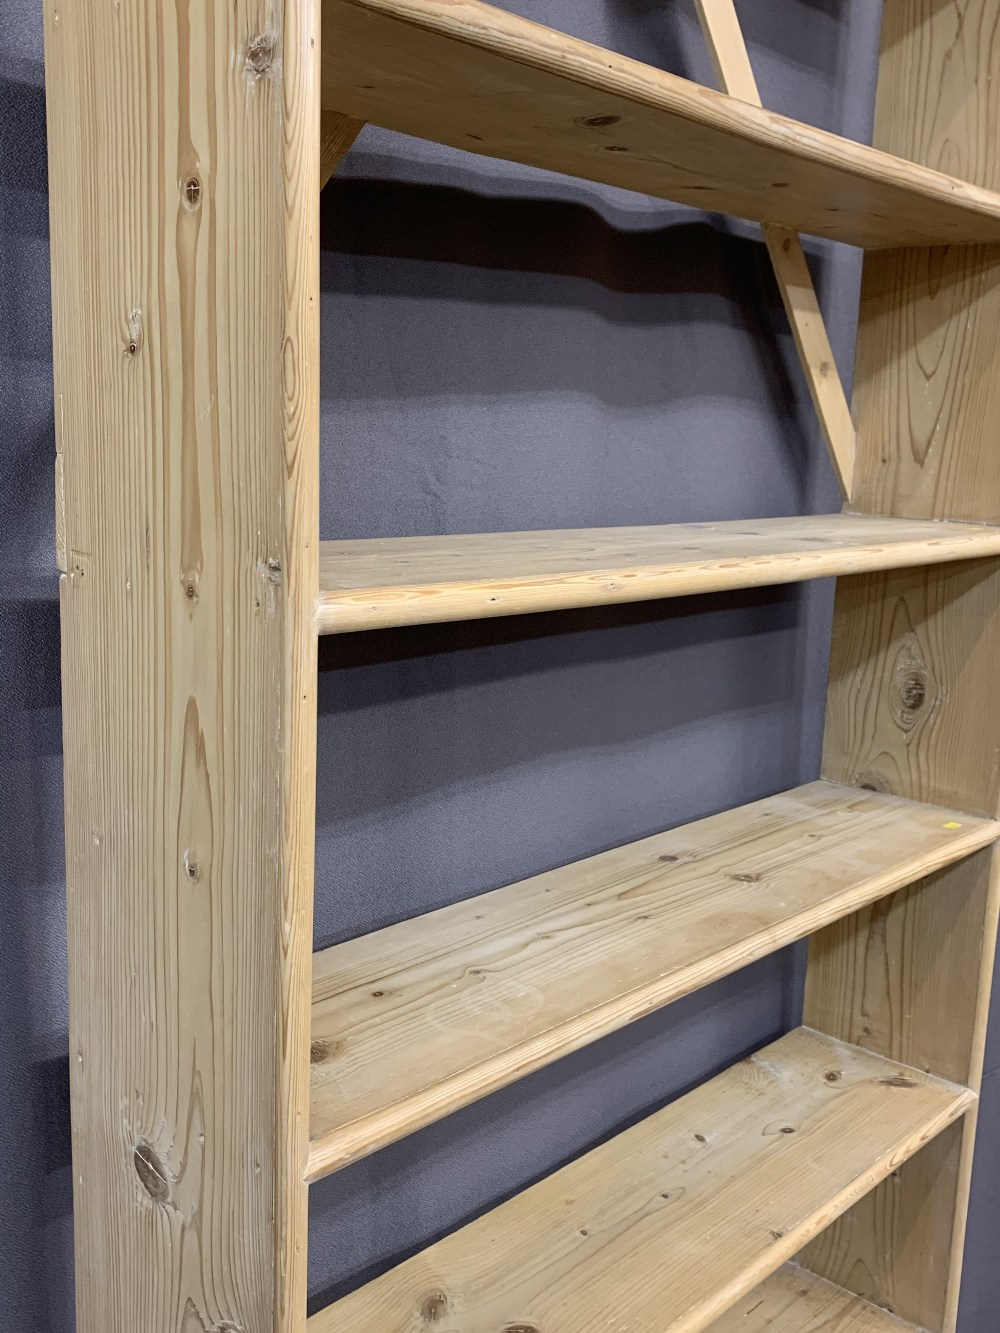 PINE BOOKCASES (2) -195cms H, 92cms W, 20cms D and 127cms H, 131cms W, 26cms D - Image 2 of 3